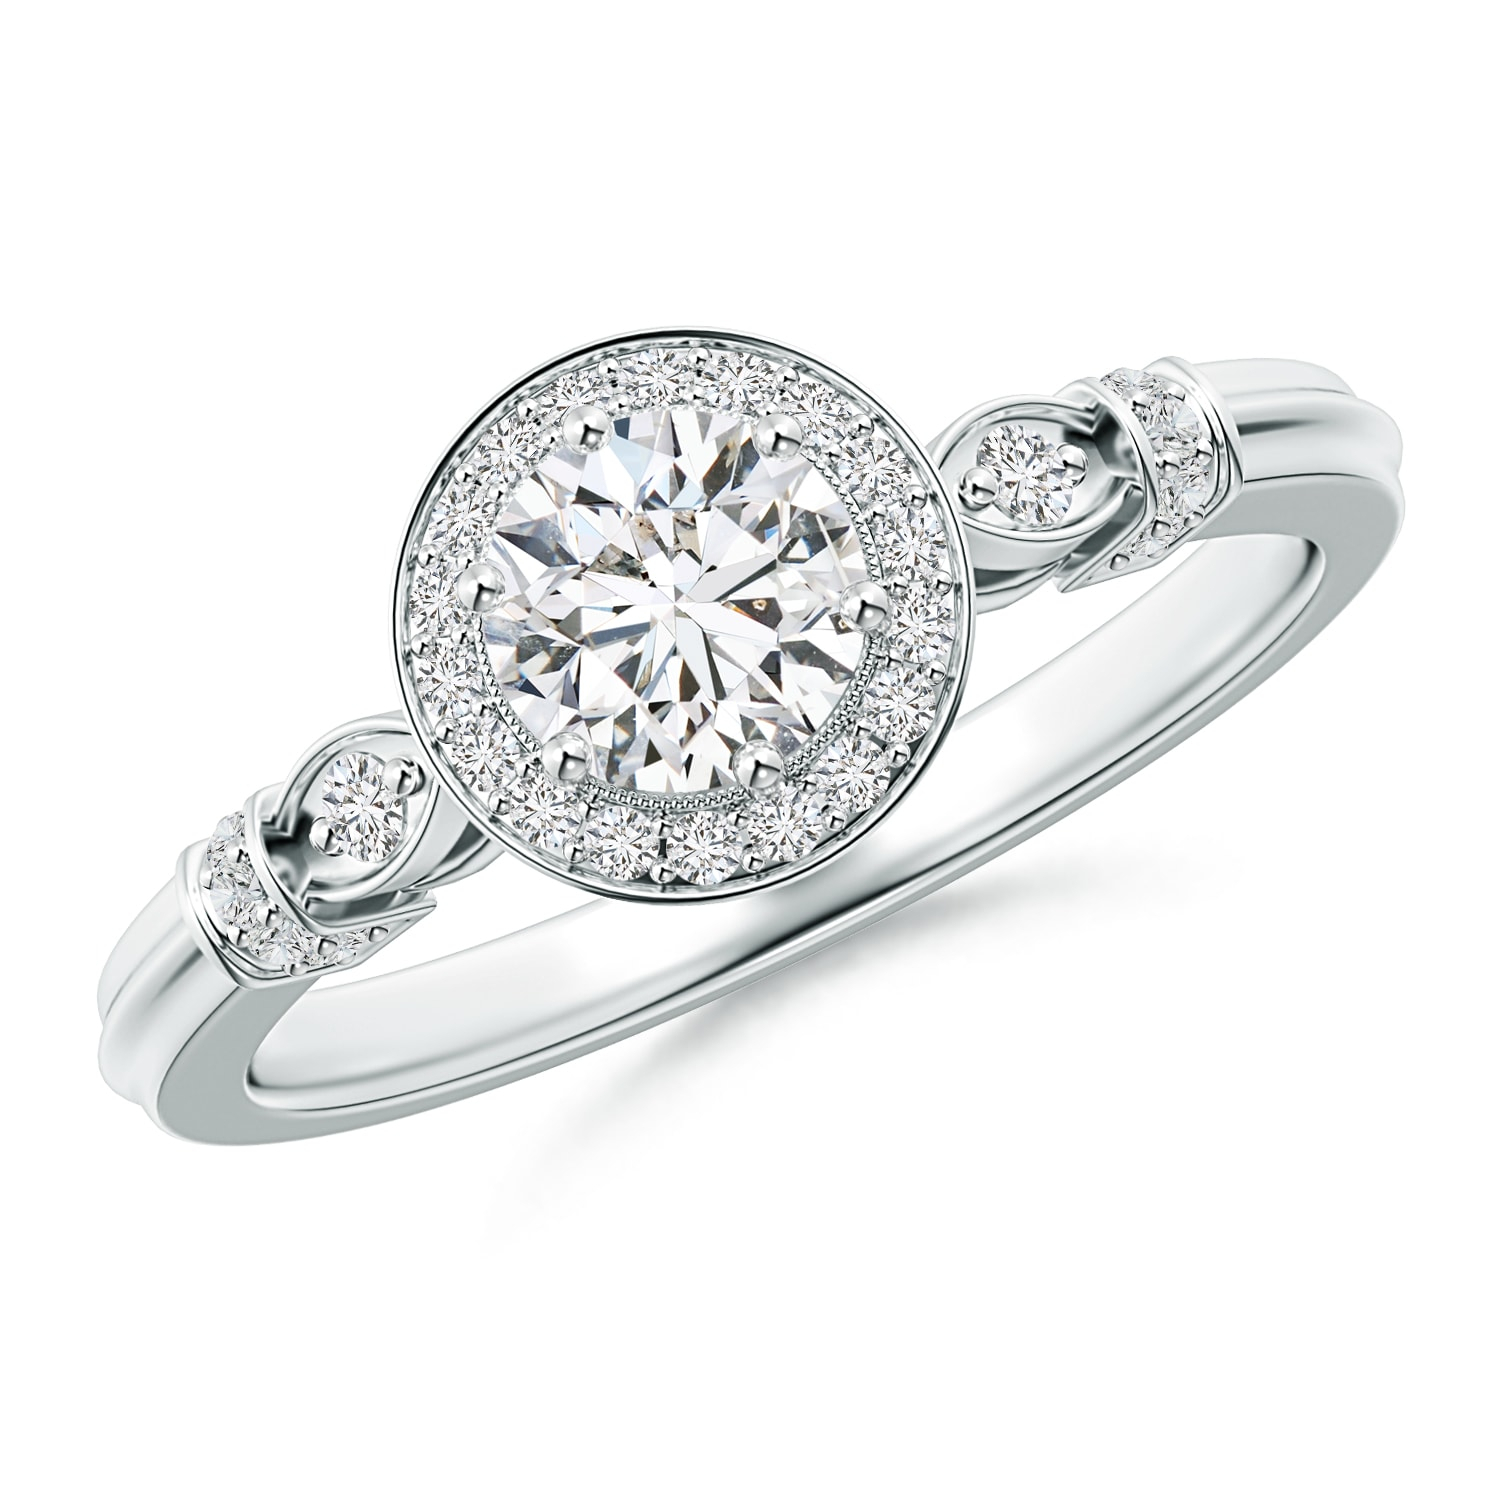 Vintage Style Round Diamond Halo Circle Ring Intended For Most Up To Date Vintage Circle Rings (Gallery 19 of 25)